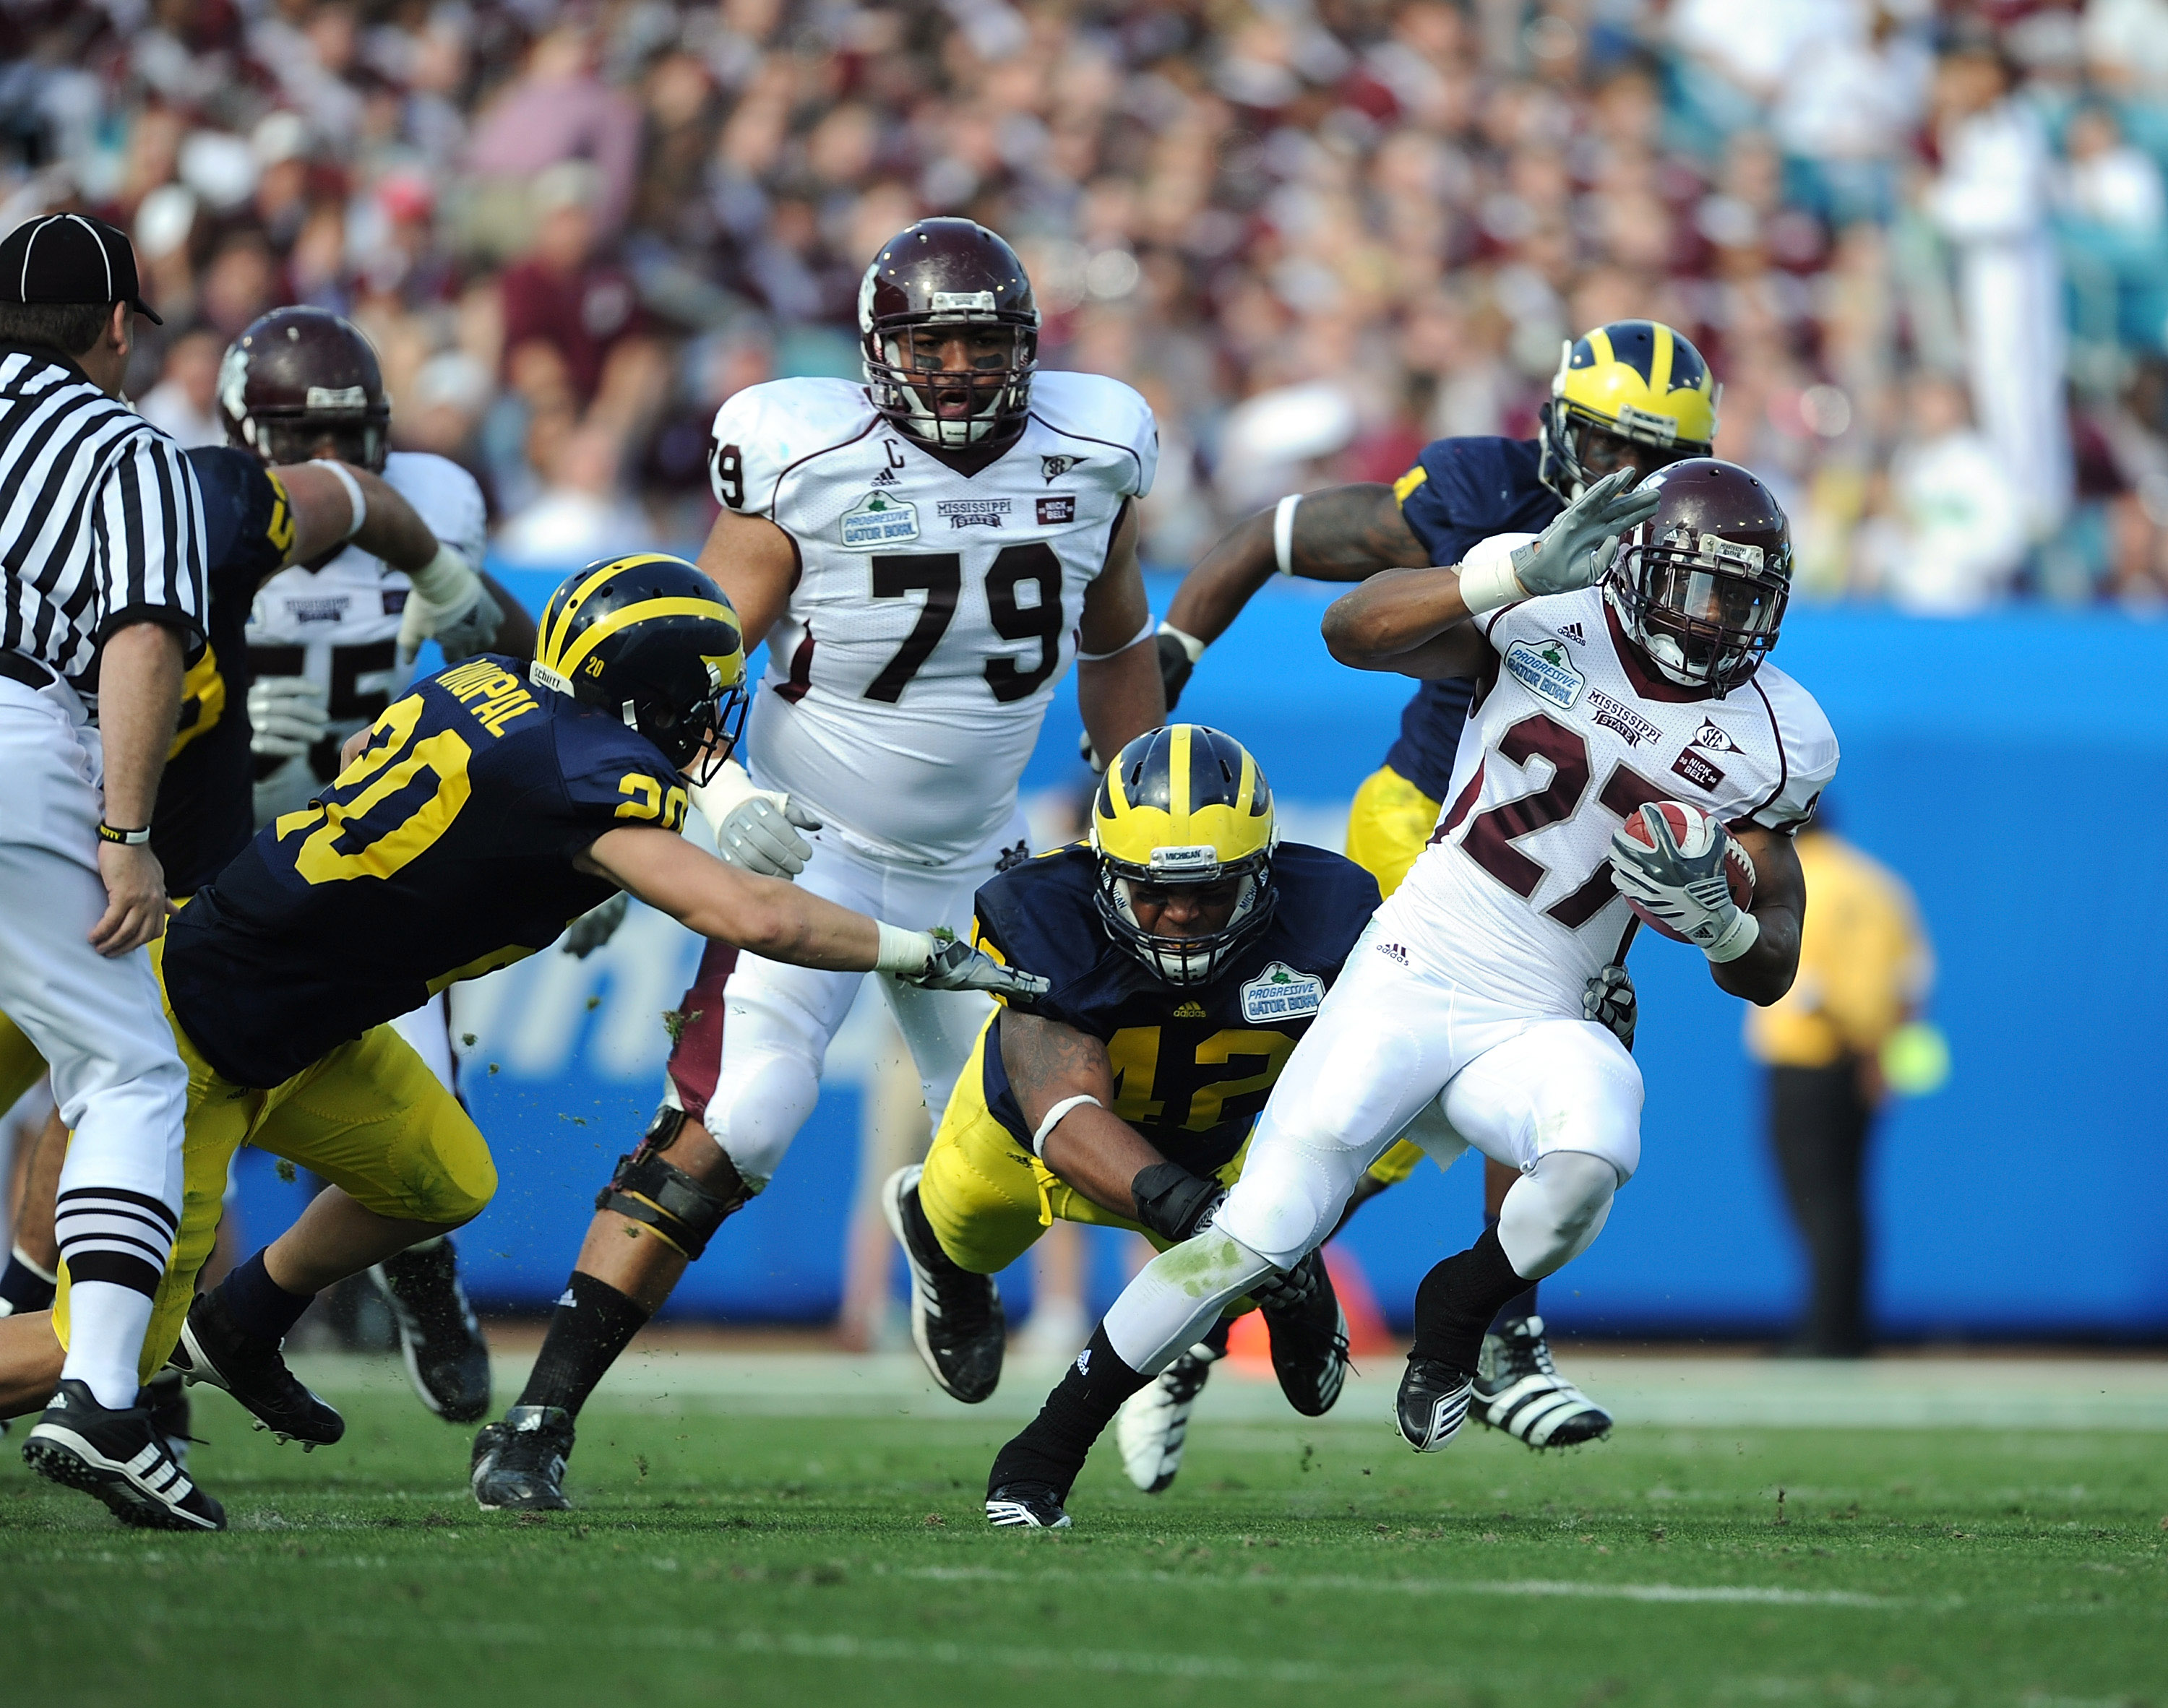 JACKSONVILLE, FL - JANUARY 01:  LaDarius Perkins # 27 of the Mississippi State Bulldogs rushes against the Michigan Wolverines during the Gator Bowl at EverBank Field on January 1, 2011 in Jacksonville, Florida  (Photo by Rick Dole/Getty Images)